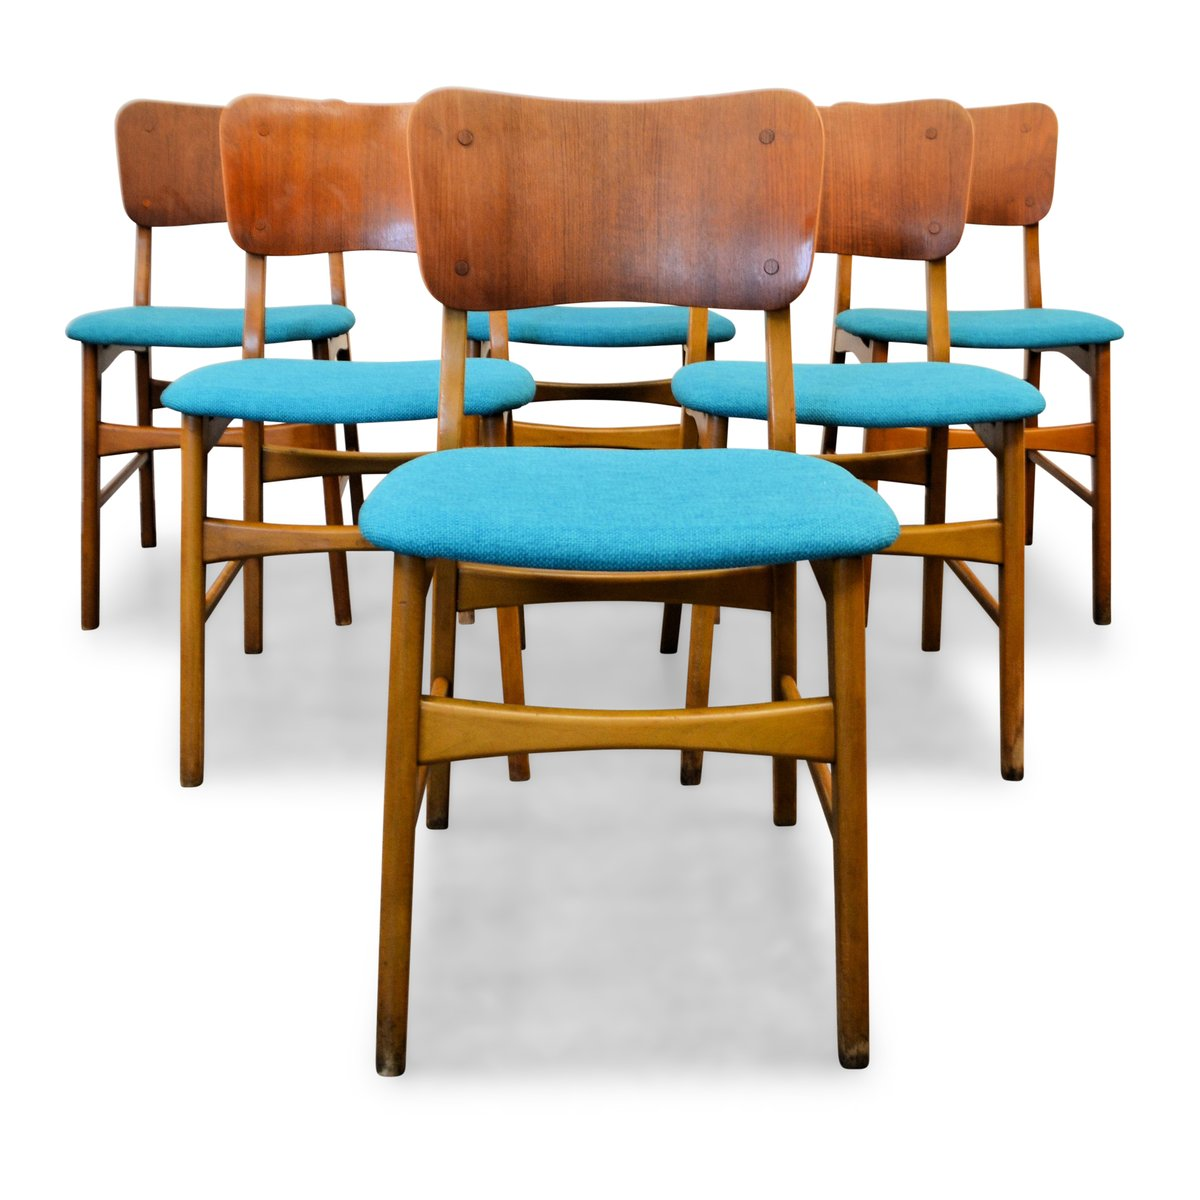 Danish Teak Dining Chairs Vintage Danish Teak And Beech Dining Chairs From Boltinge